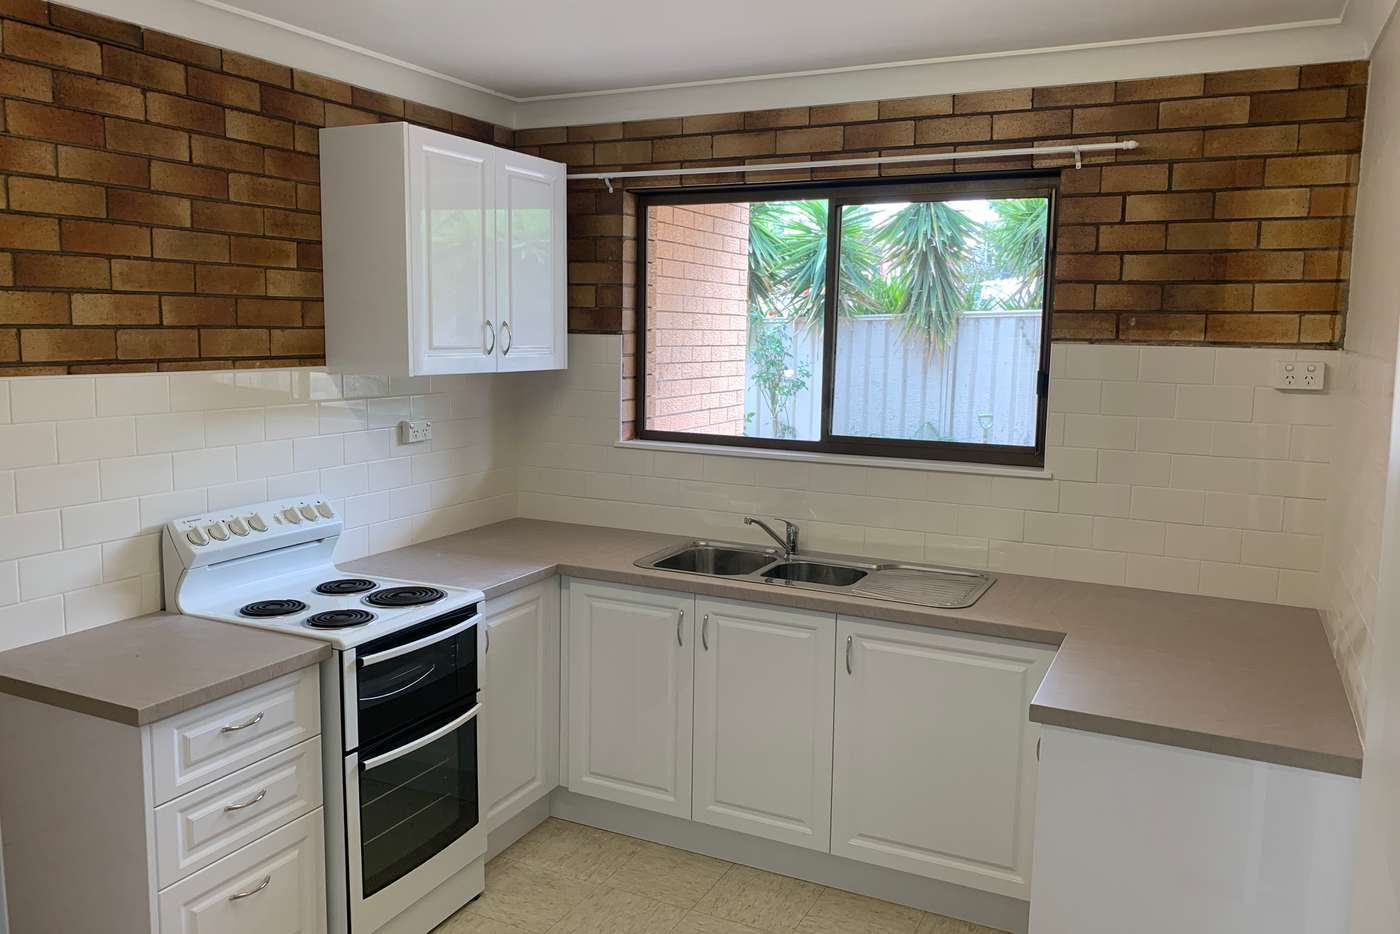 Main view of Homely house listing, 2/14 Alexandra Drive, Warwick QLD 4370